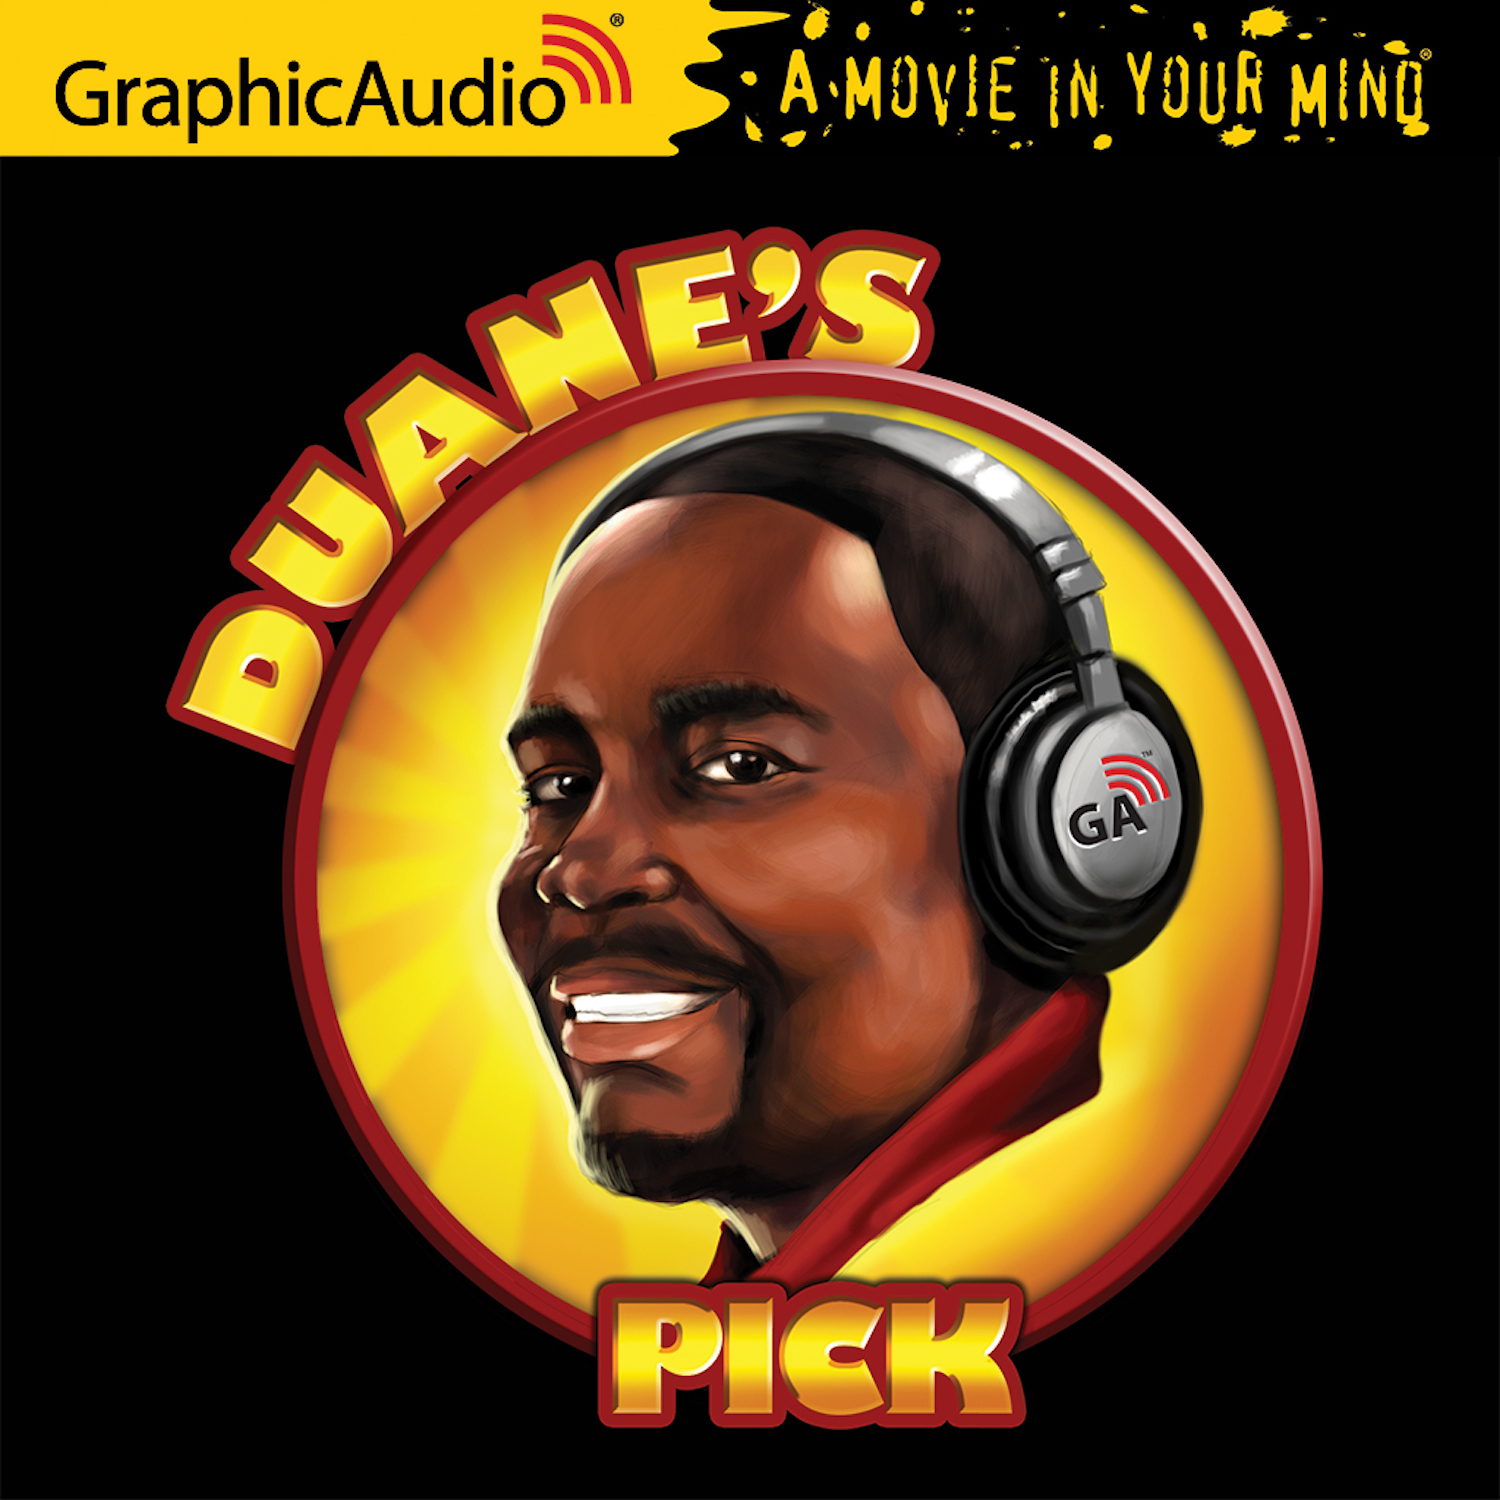 GraphicAudio - Duane's Pick of the Week